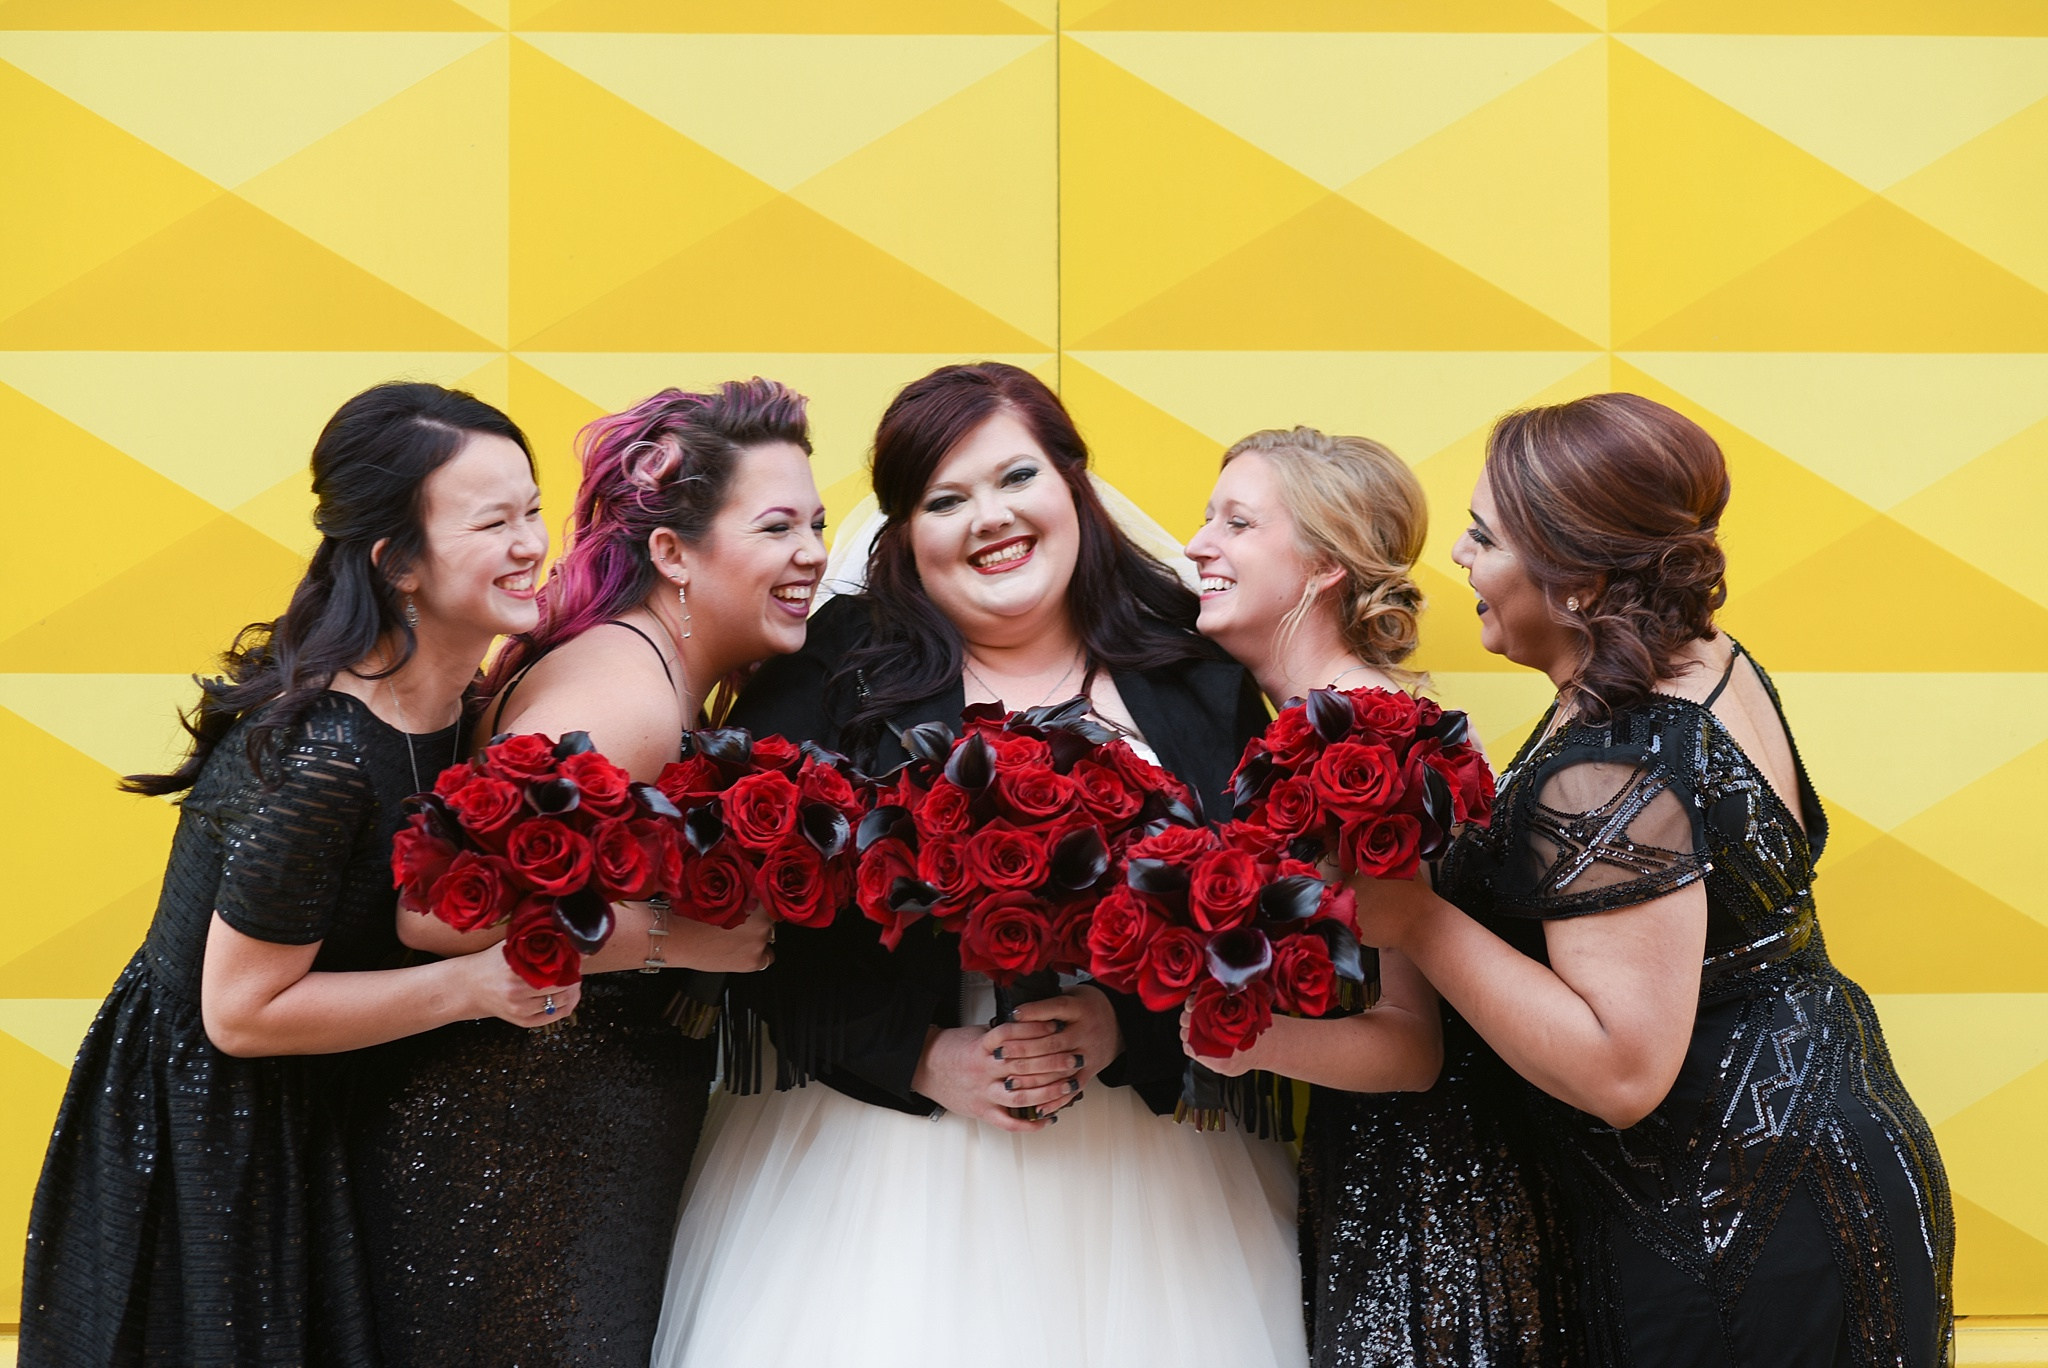 Alecia & Nick's Rock 'N Roll Themed Wedding at The Studios at Overland Crossing, The Studios at Overland Crossing, The Studios, Overland Crossing, Denver Wedding Photographer, Denver Wedding, Downtown Denver Wedding, Yellow Wall, Rock N Roll Wedding, Rock Wedding, Bridesmaids Portraits, Bridesmaids, Bride, Yellow Wall Downtown Denver, Curtis Hotel Yellow Wall